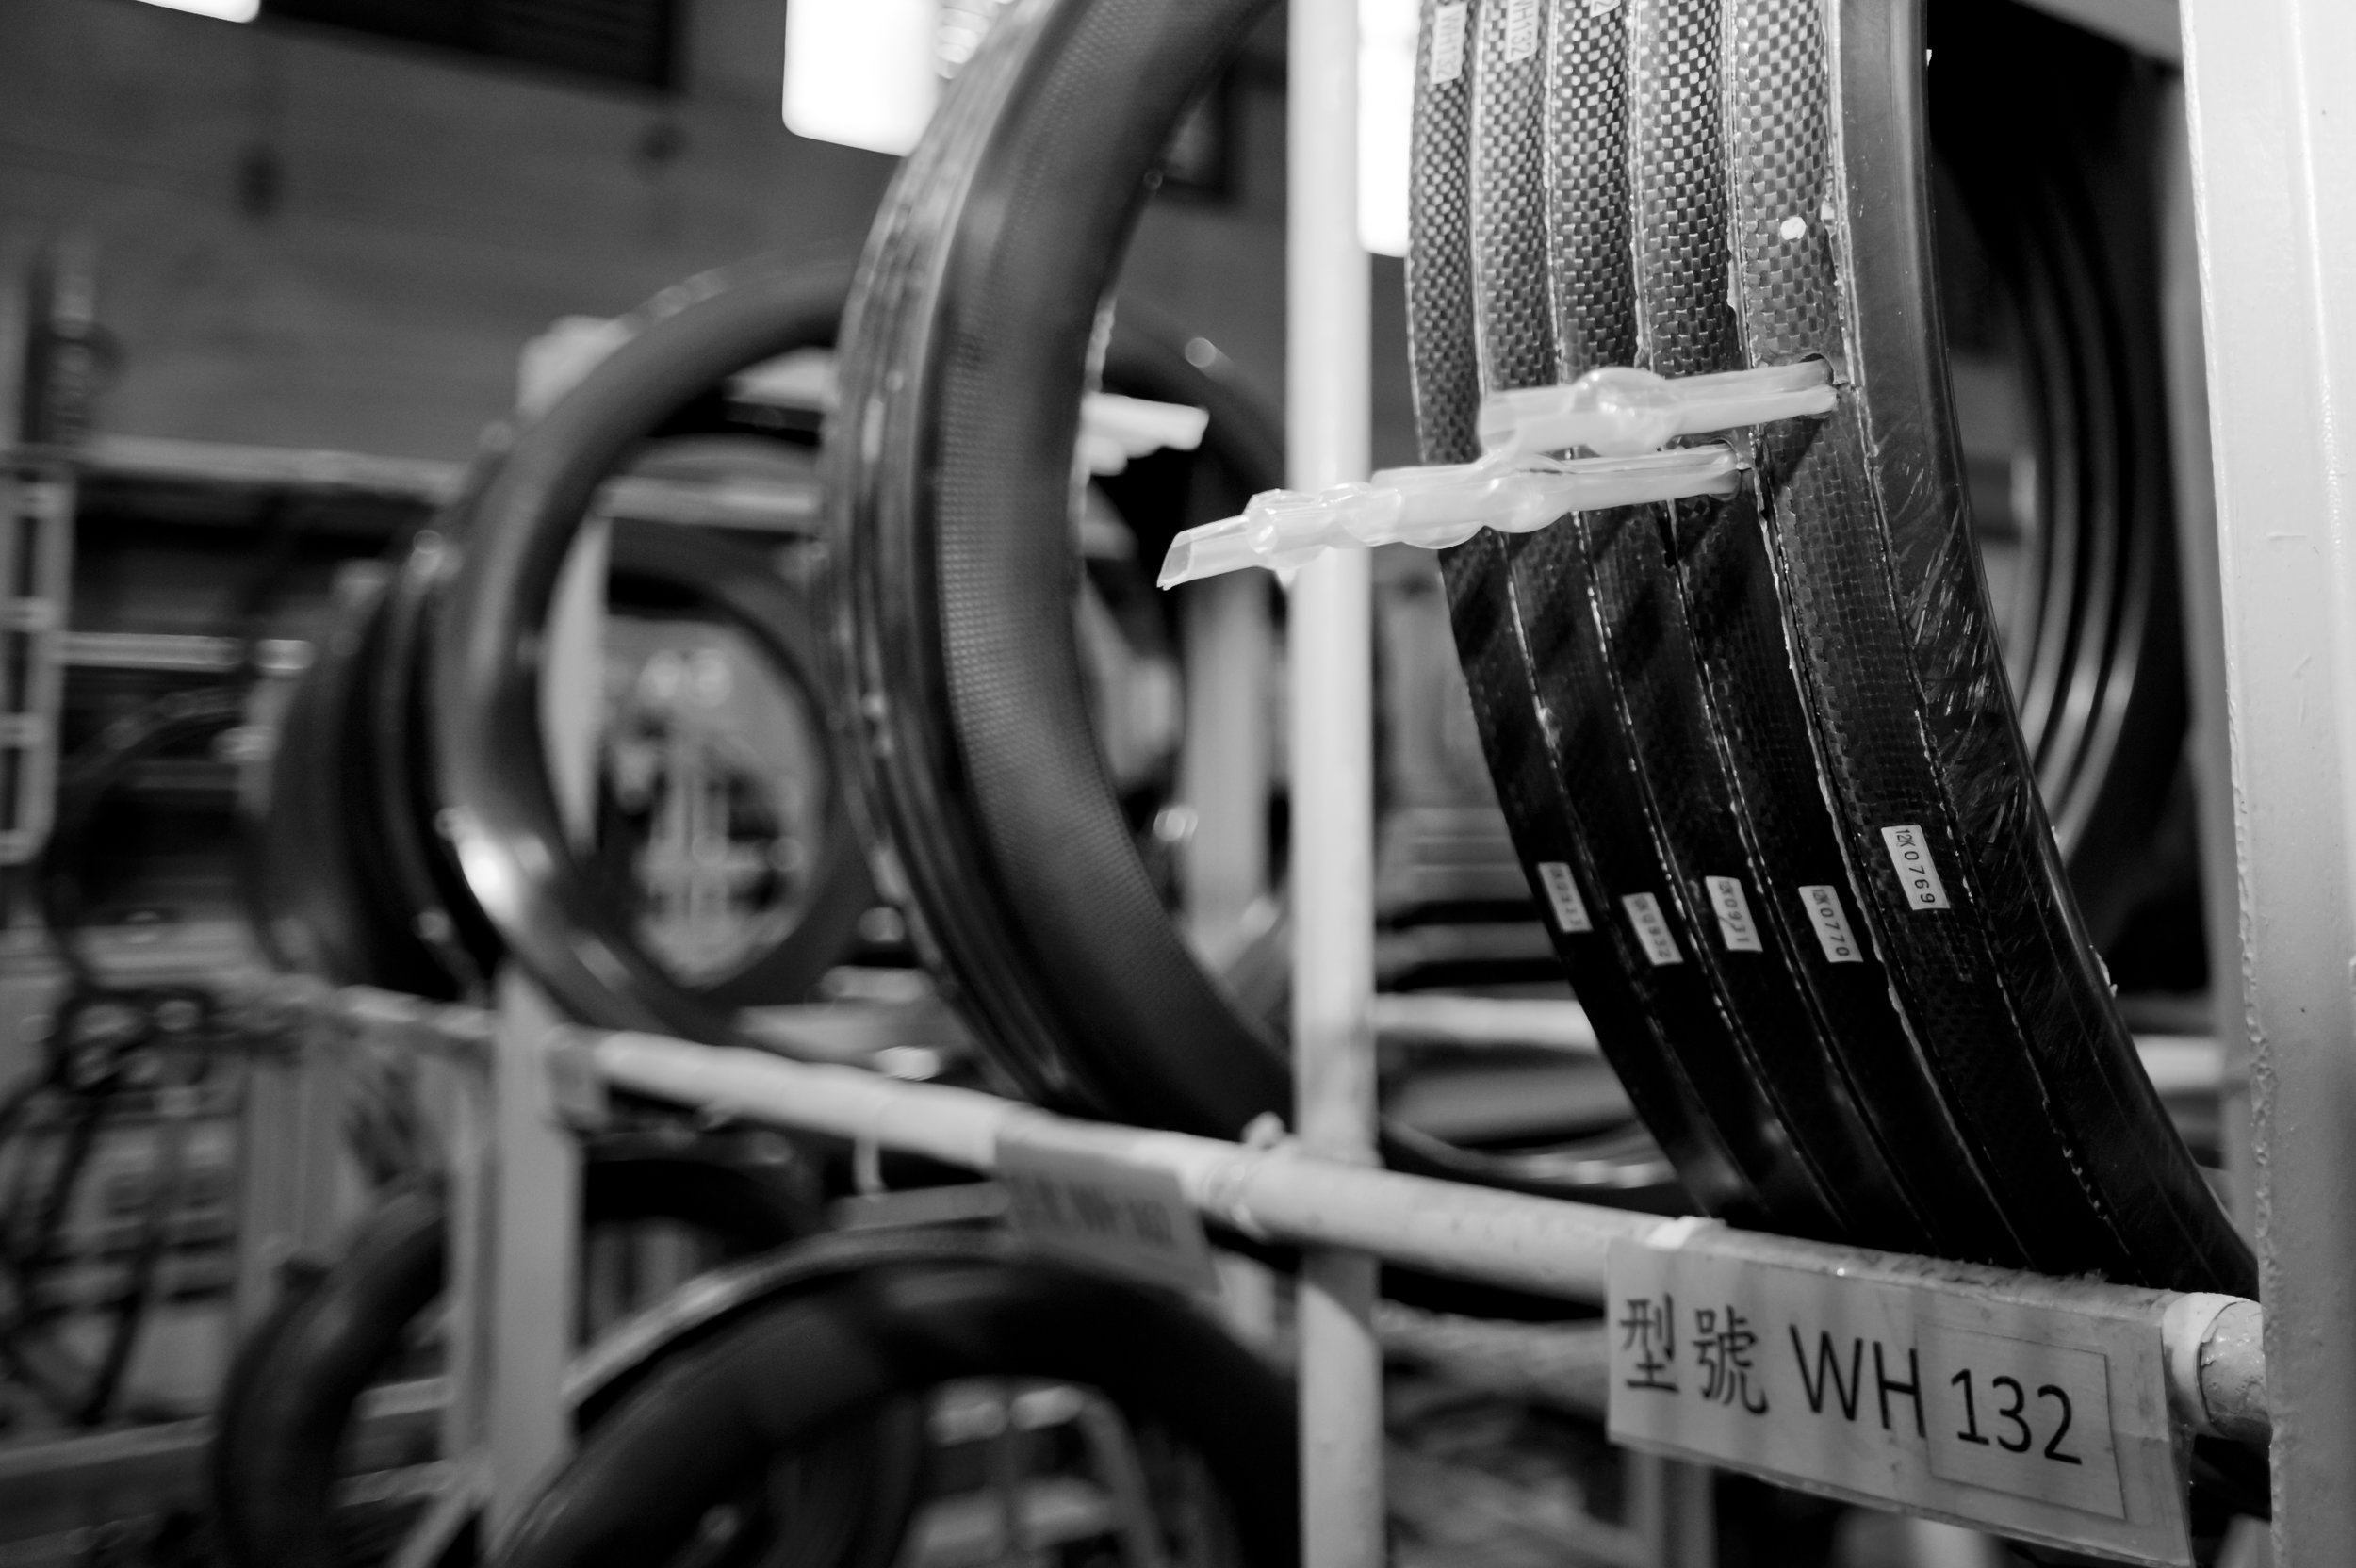 Carbon wheels fresh from the fire at the Equinox factory, Taiwan © Crankphoto